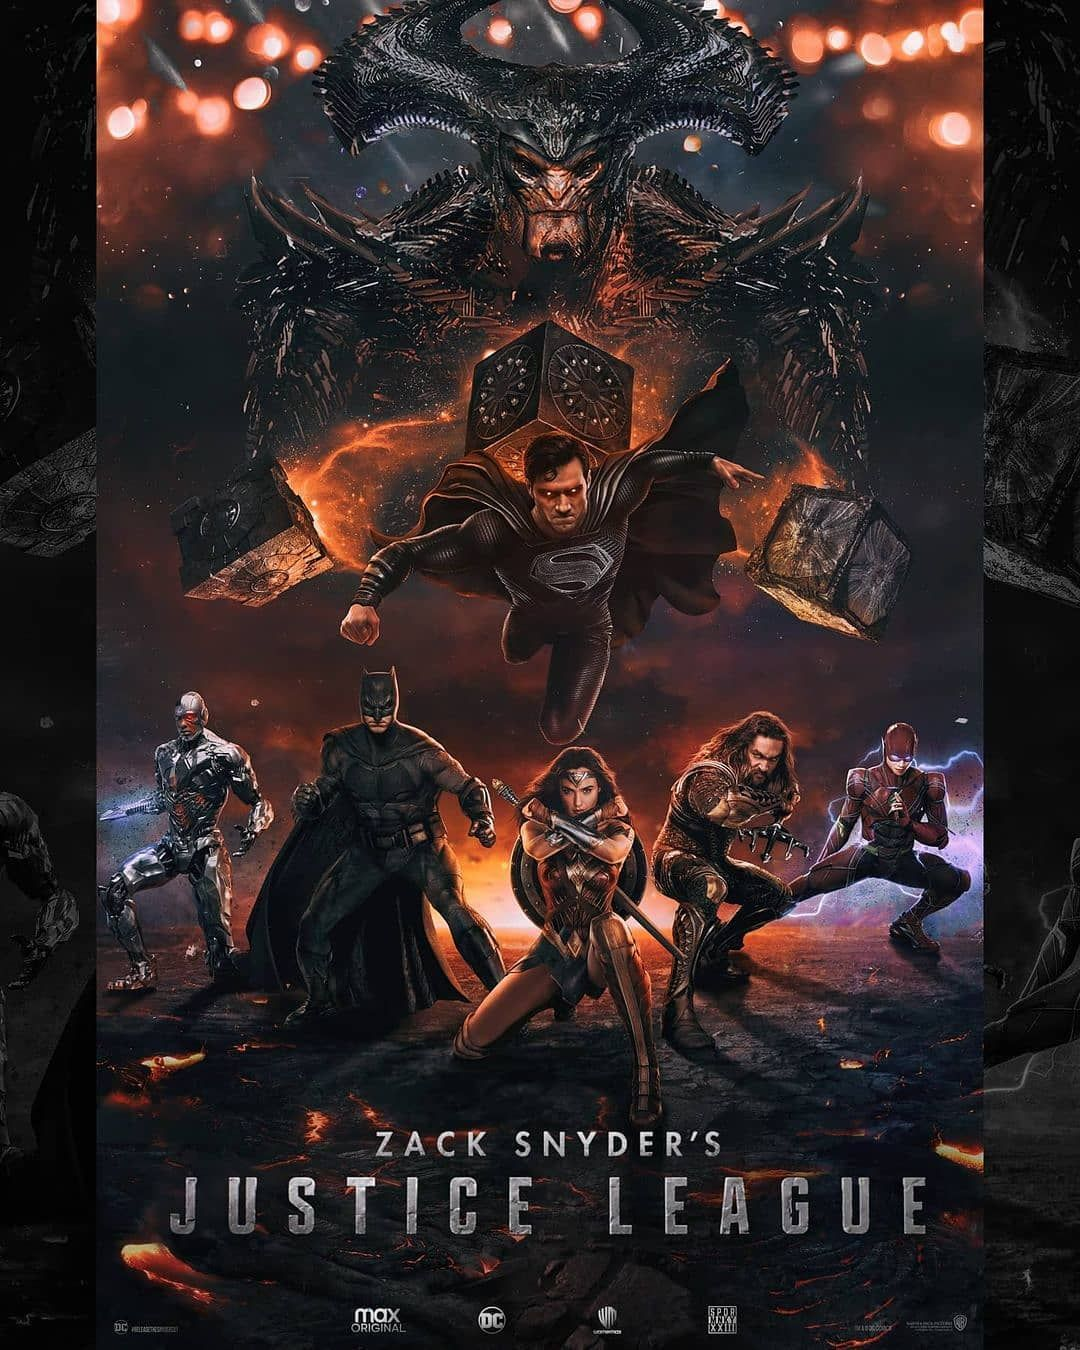 We Are Heros On Instagram This World Will Fall My Lord Follow Marvel Dc Fanclub1 Link In Bio In 2021 Justice League Comics Justice League Art Justice League